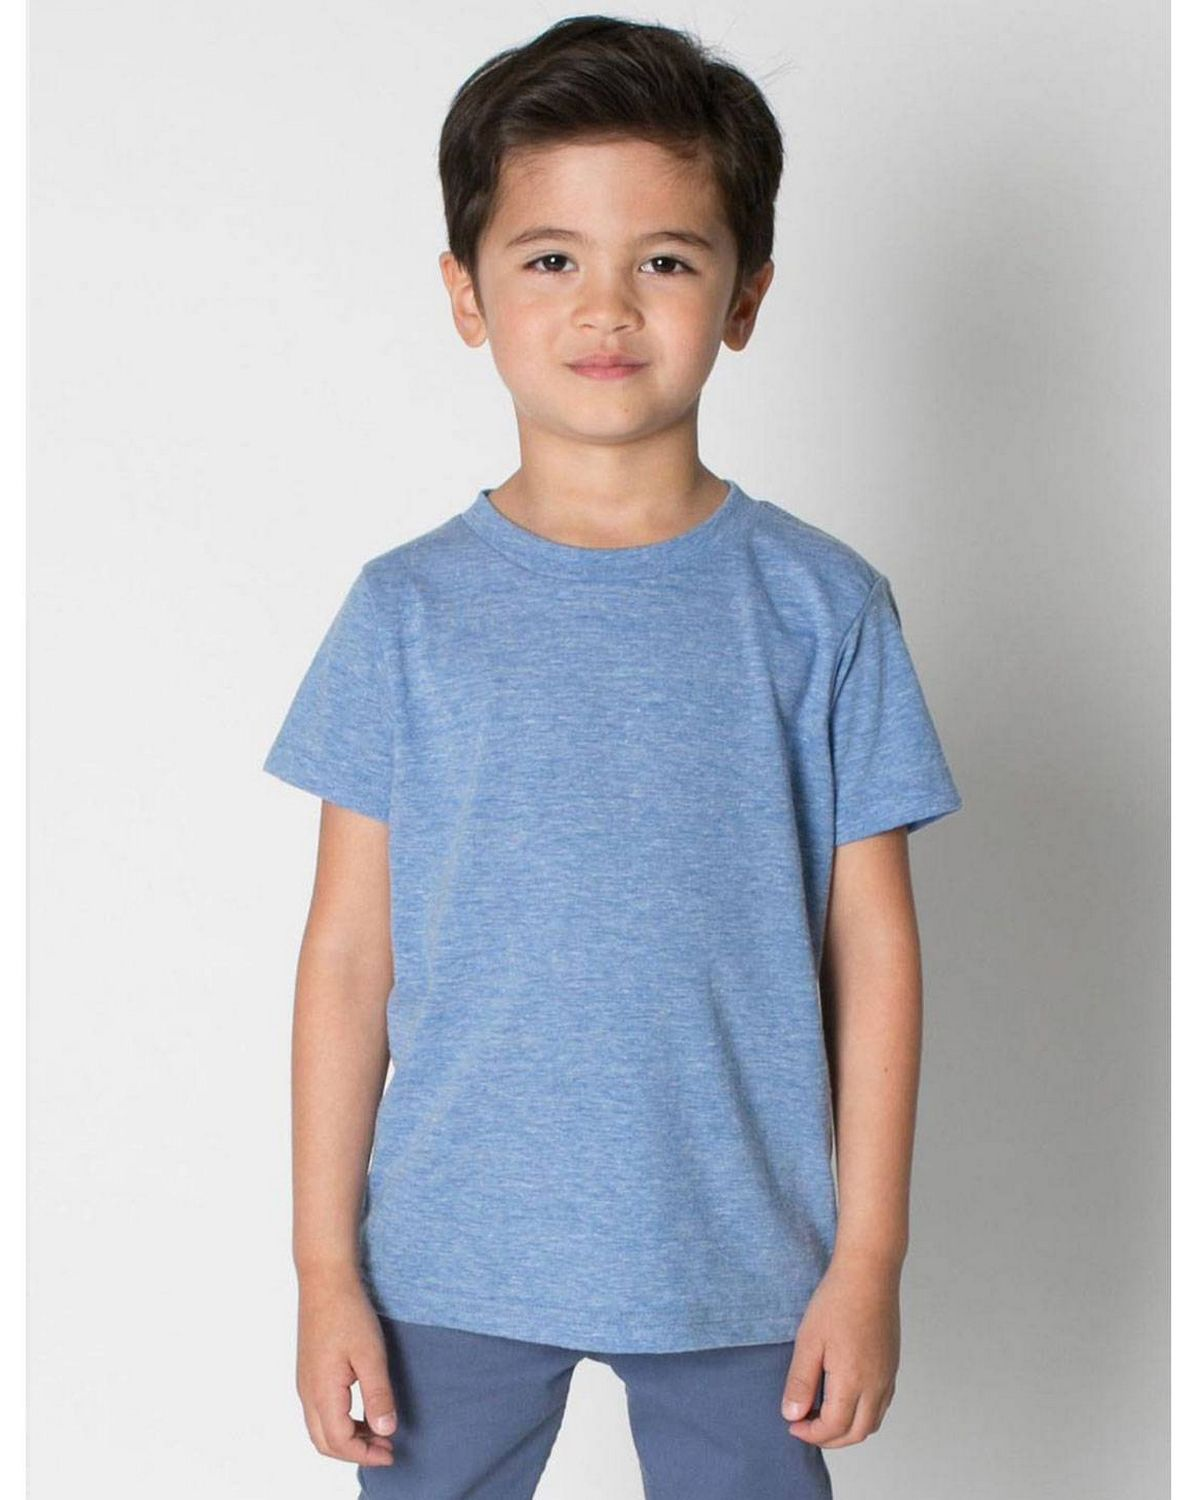 American Apparel TR101W Toddler Triblend T-Shirt